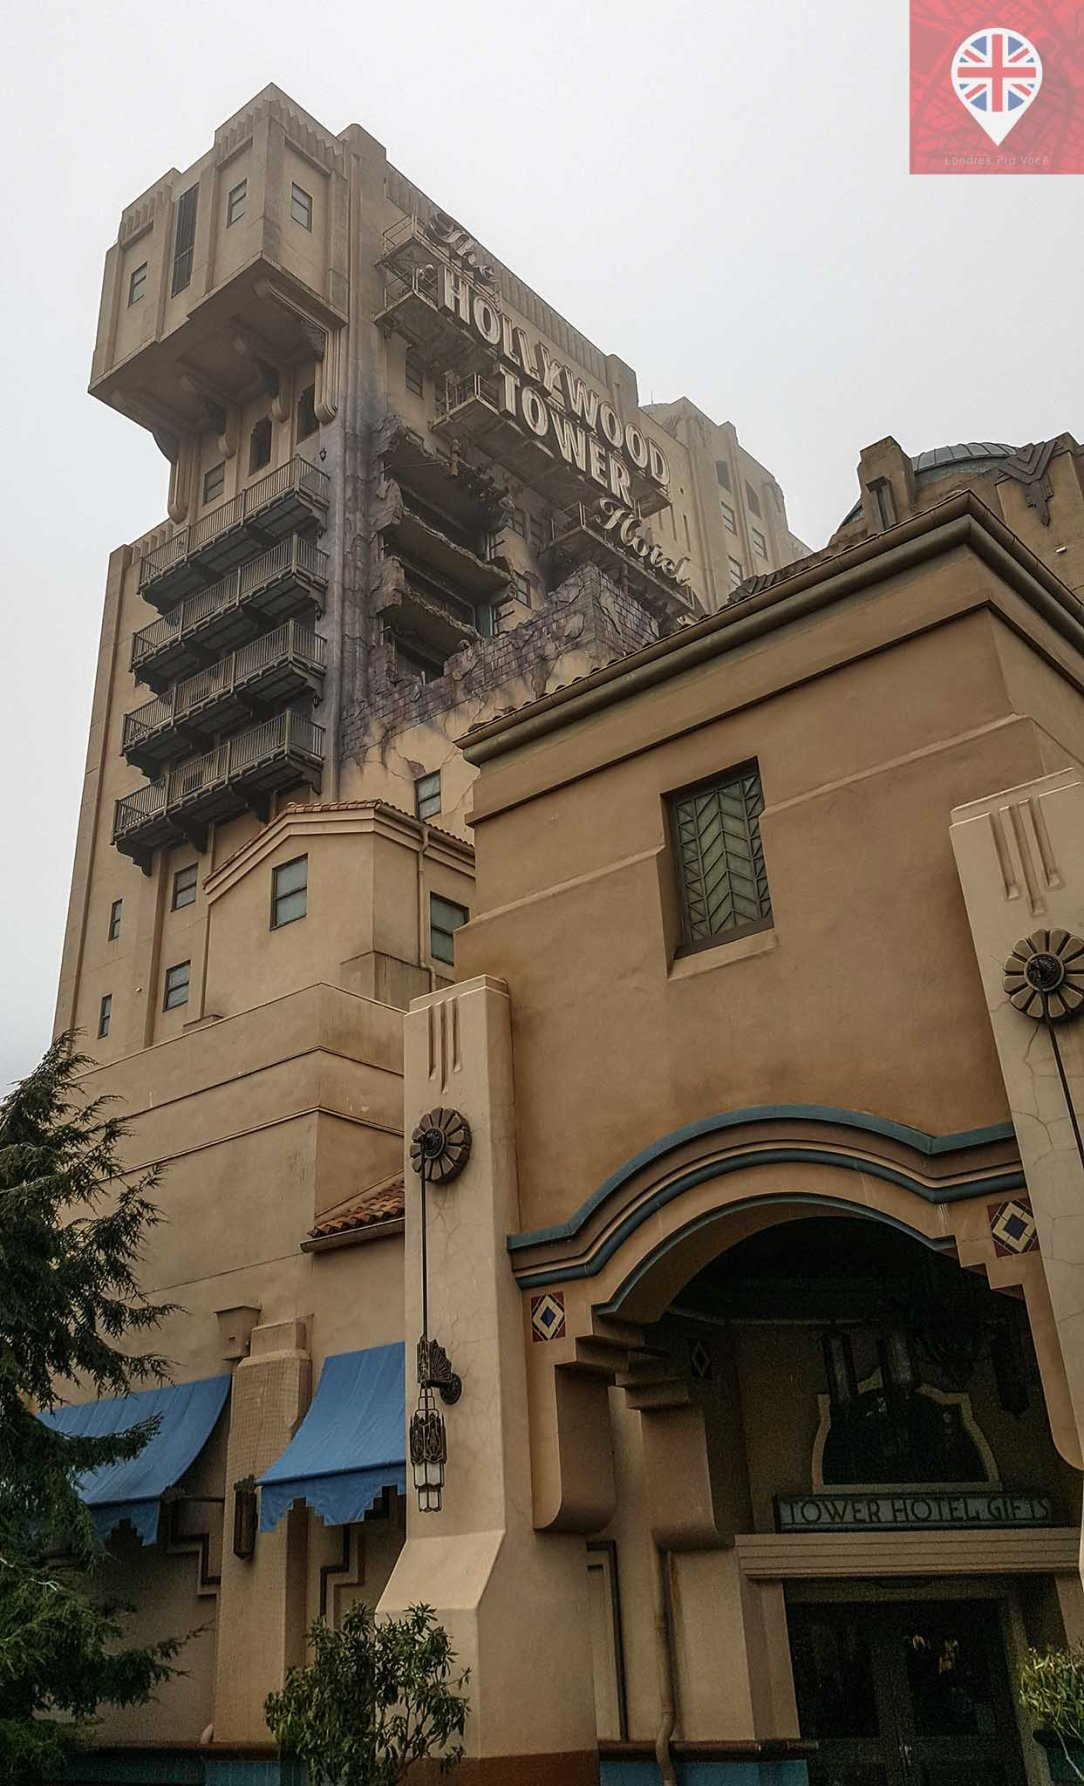 Disney Studios Tower of Terror